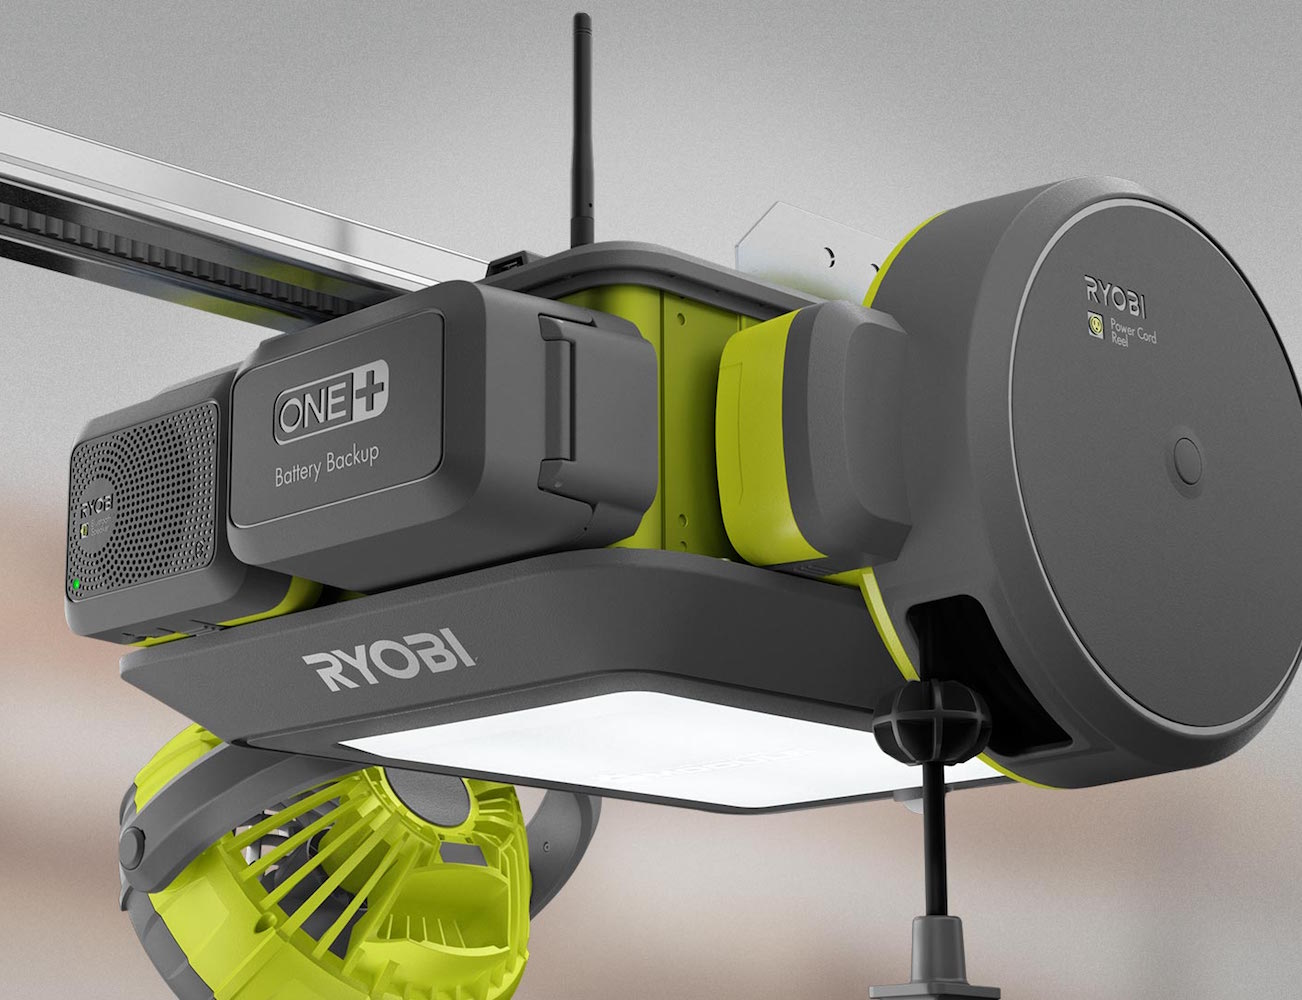 ryobi ultra quiet garage door opener review the gadget flow